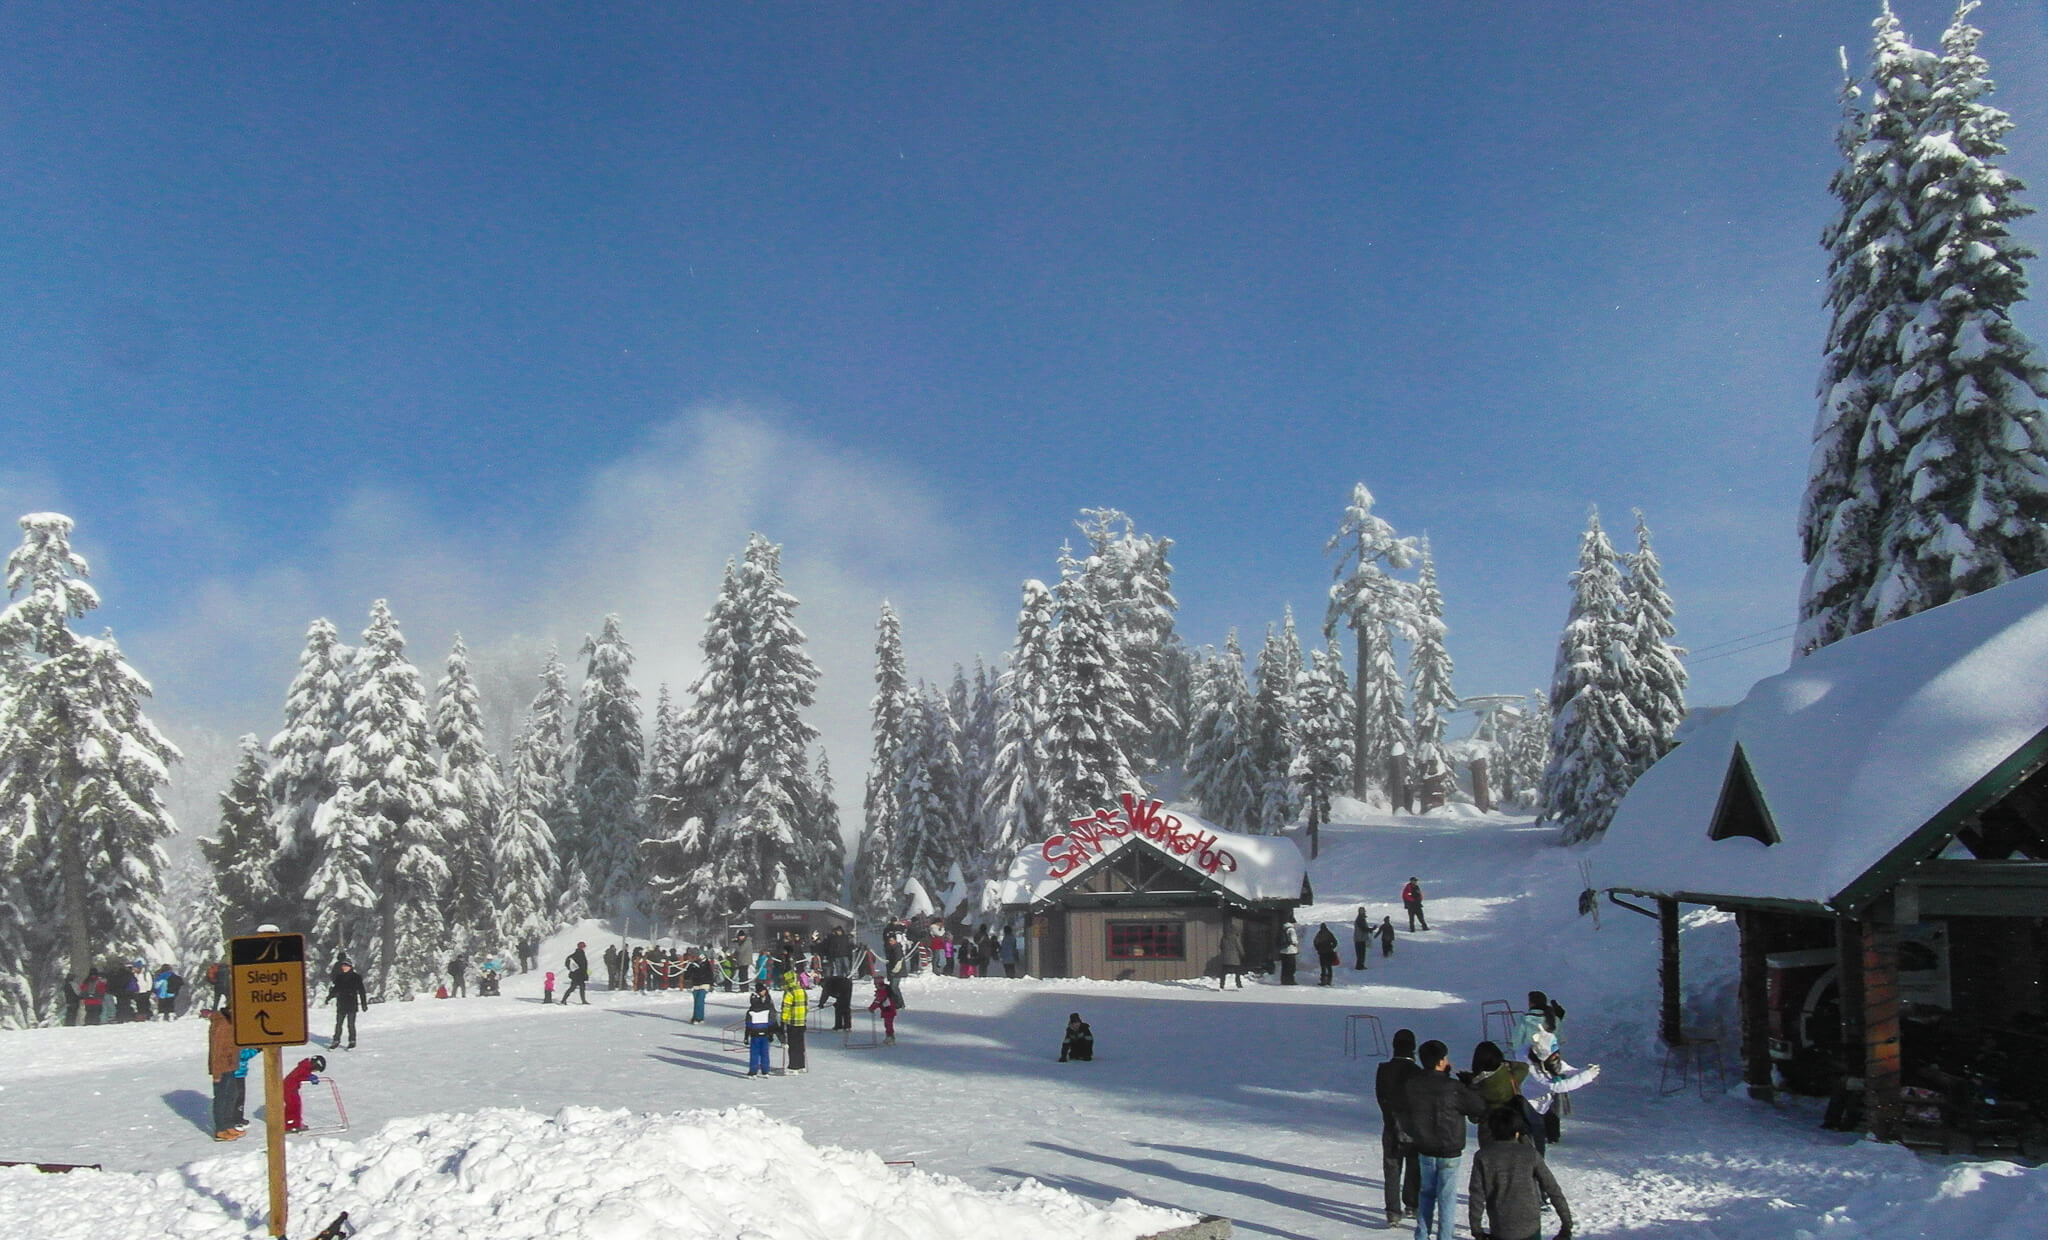 Peak of Christmas - Grouse Mountain Skating Pond